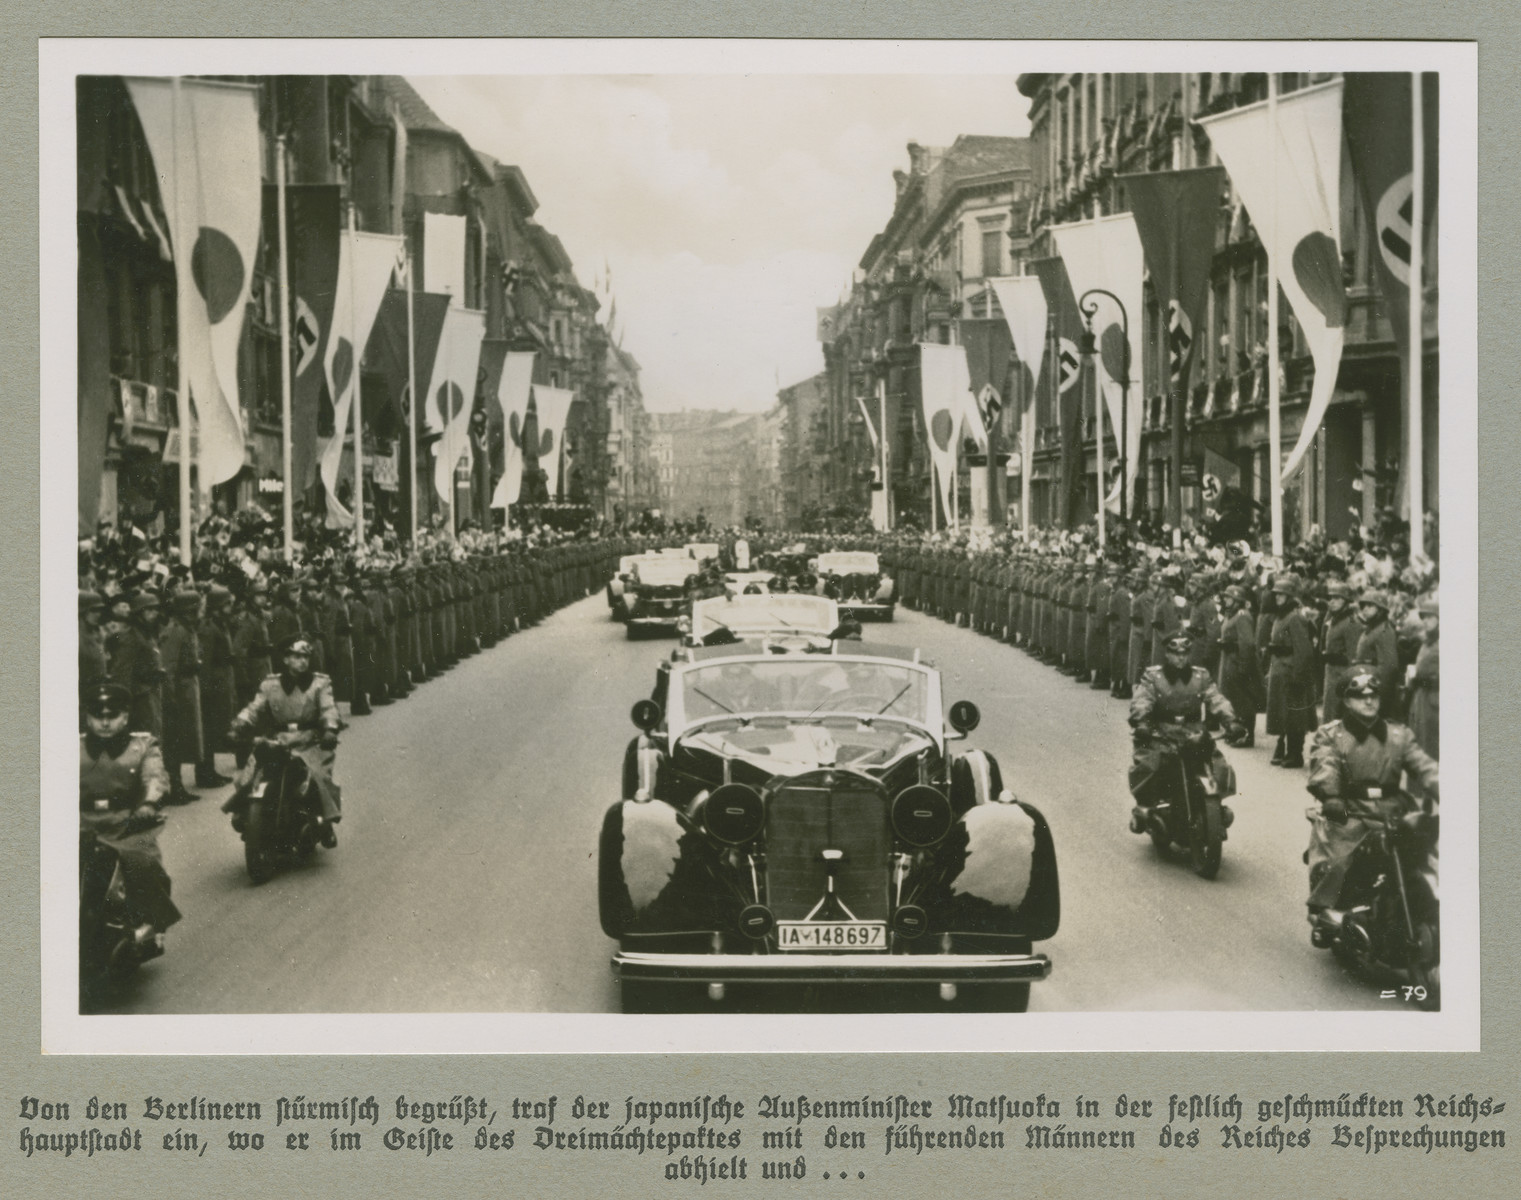 A motorcade proceeds down a Berlin street lined with Japanese and Nazi flags.  The original caption reads:  Welcomed enthusiastically by the people of Berlin, the Japanese Foreign Minister Matsuoka arrives in the festively adorned capital  where he met and held talks with the Reich's leading men as a representative of the Tripartite Pact, and...   (Caption continues with associated image on WS# 75979)